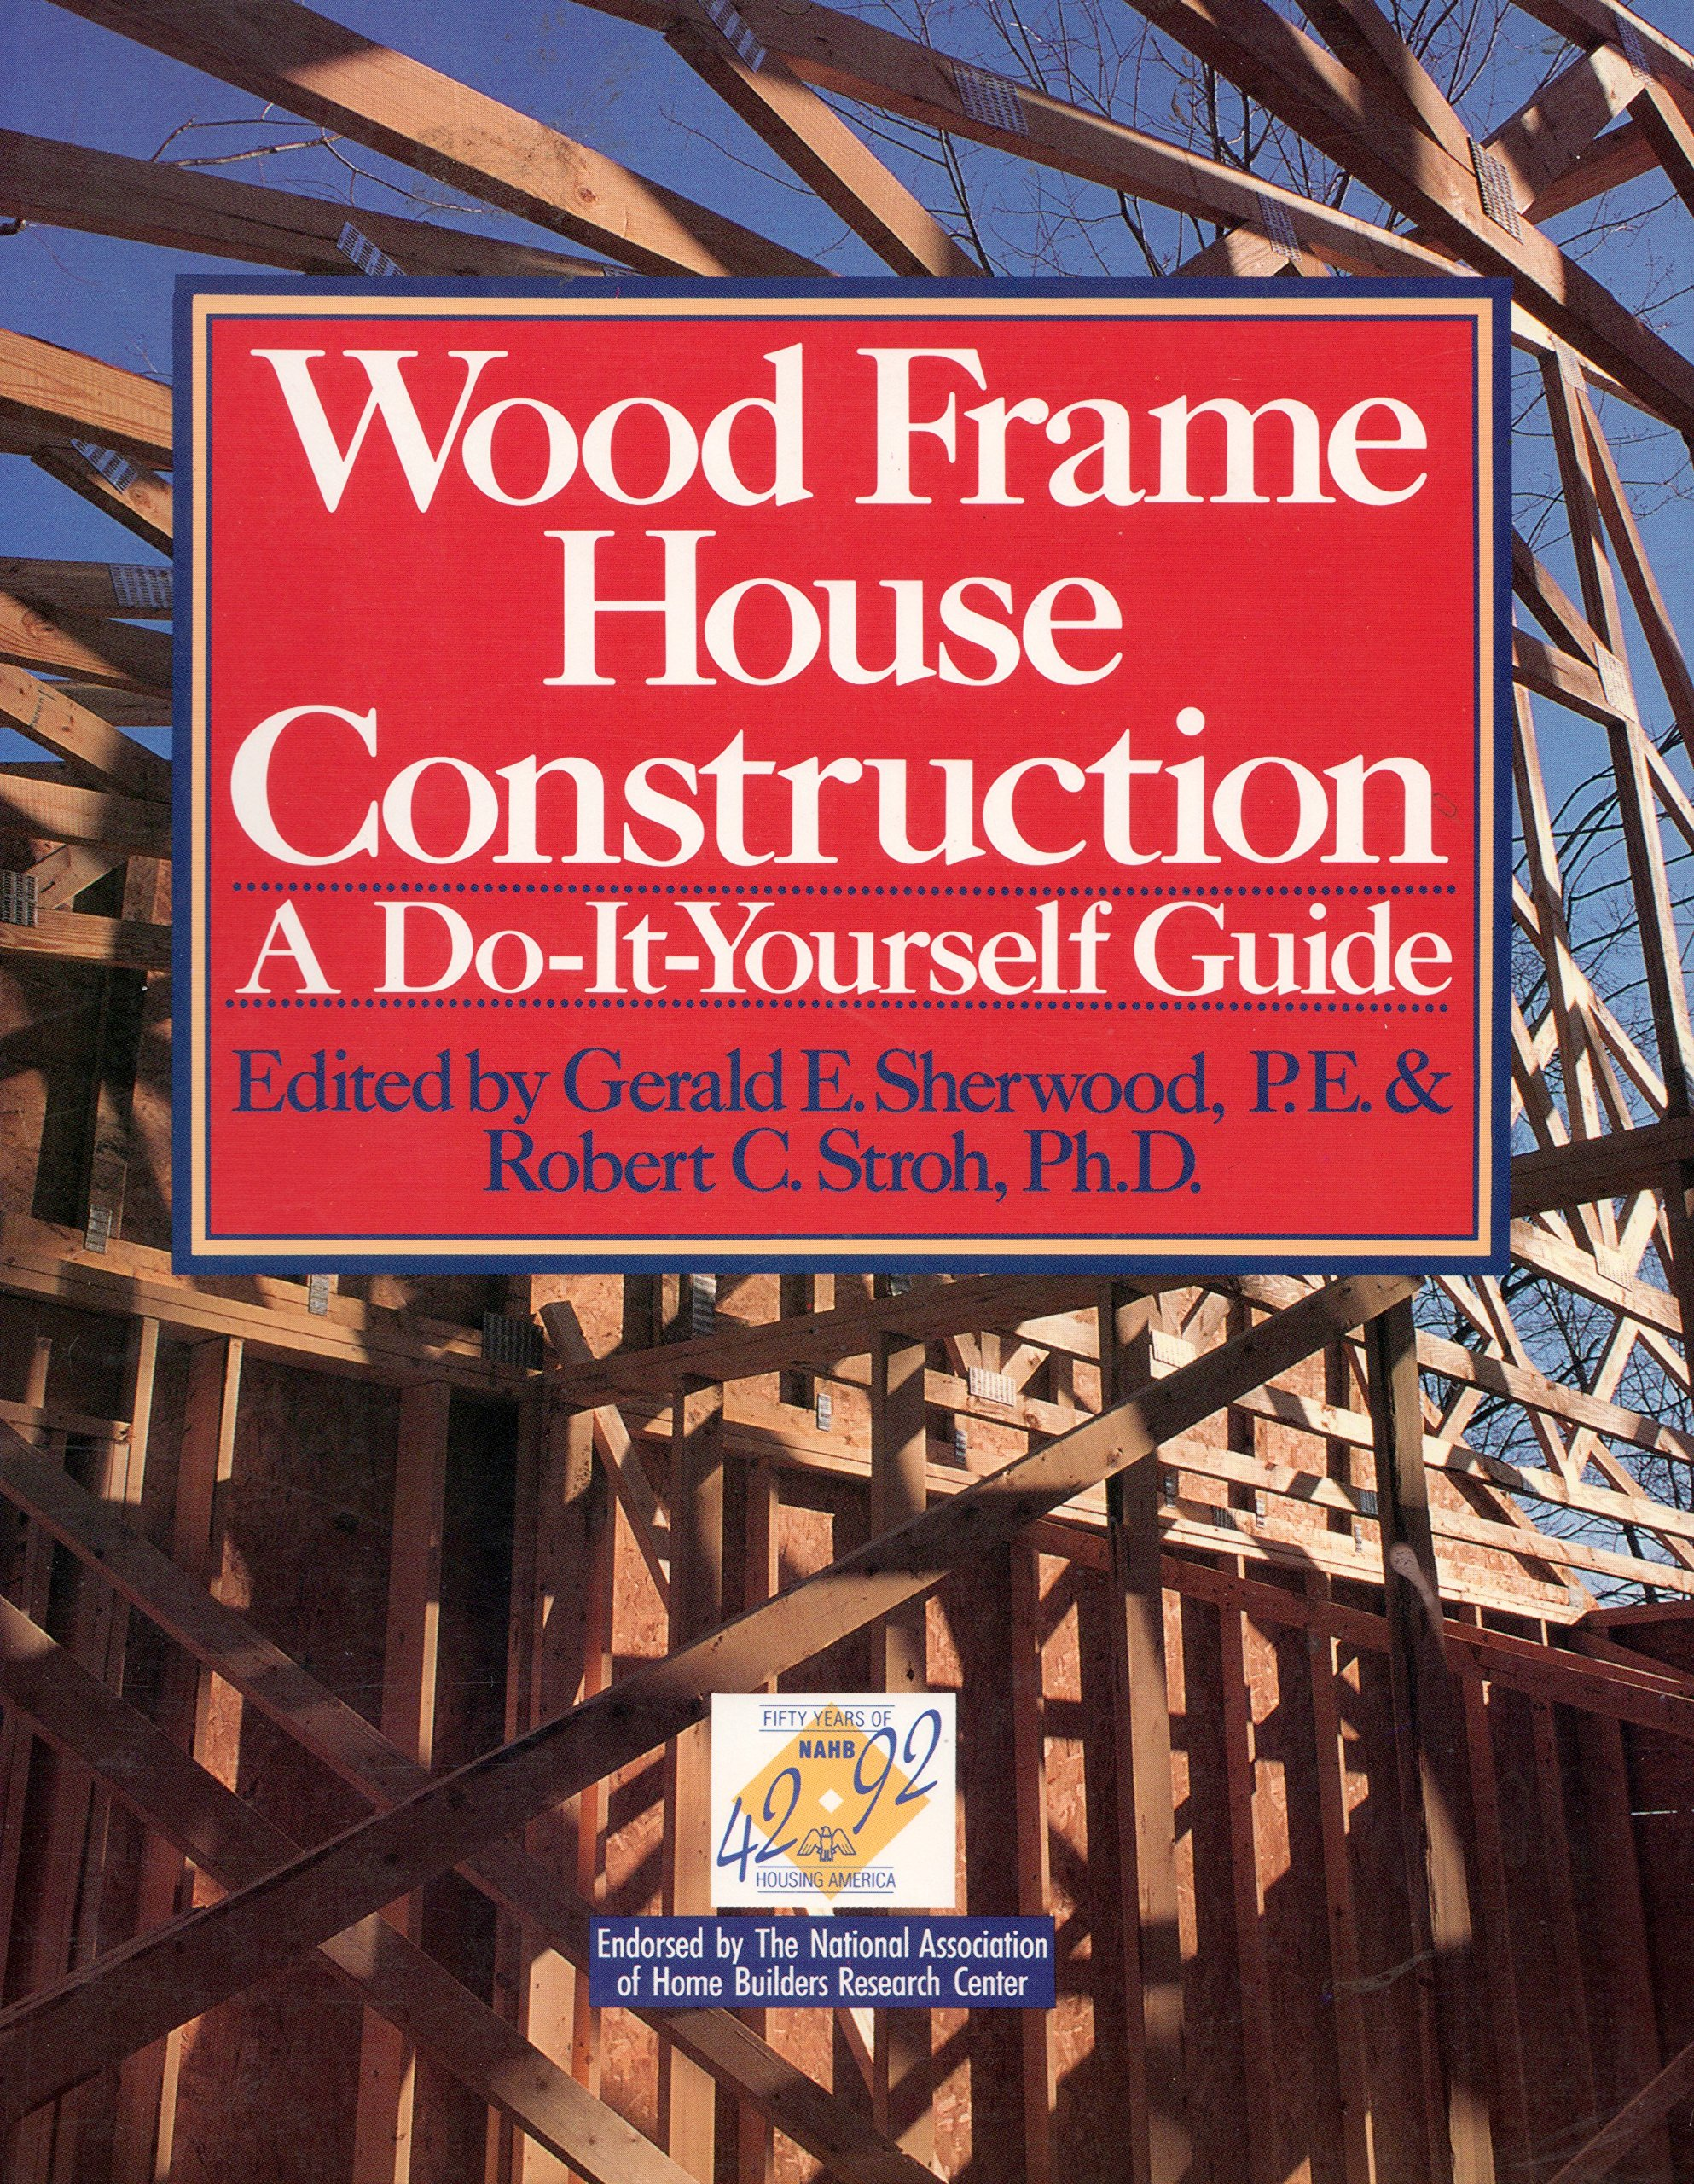 Wood Frame House Construction: A Do-It-Yourself Guide